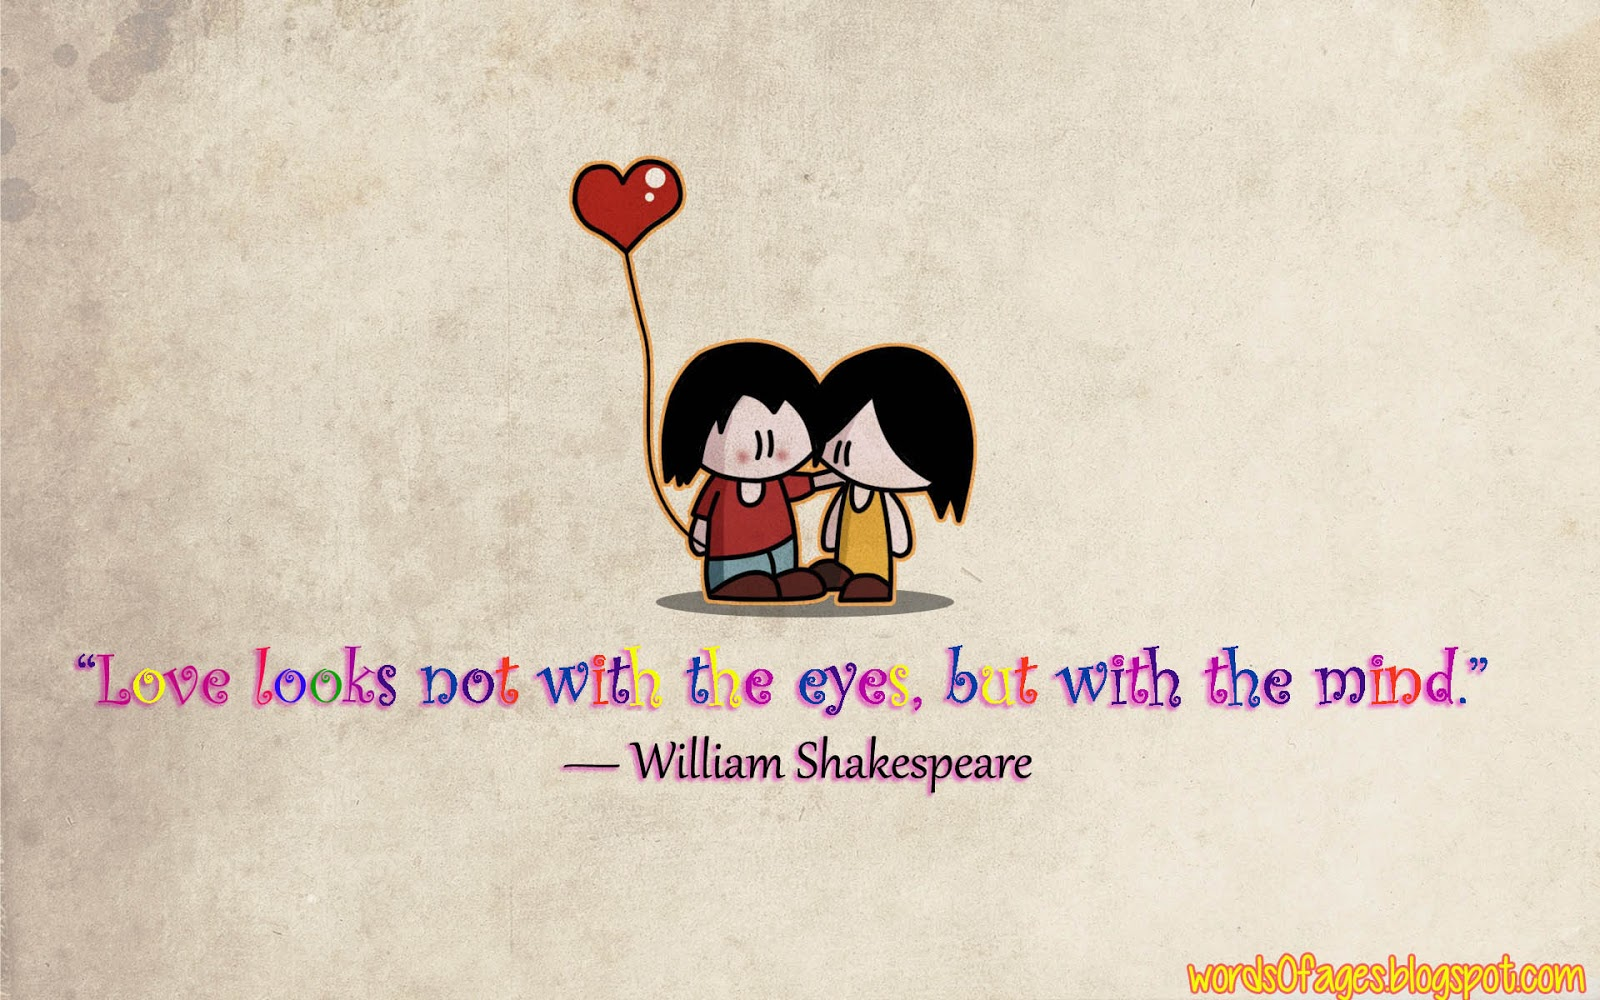 Shakespeare Quotes On Beautiful Eyes: 30 Attractive And Loving Shakespeare Quotes That Will